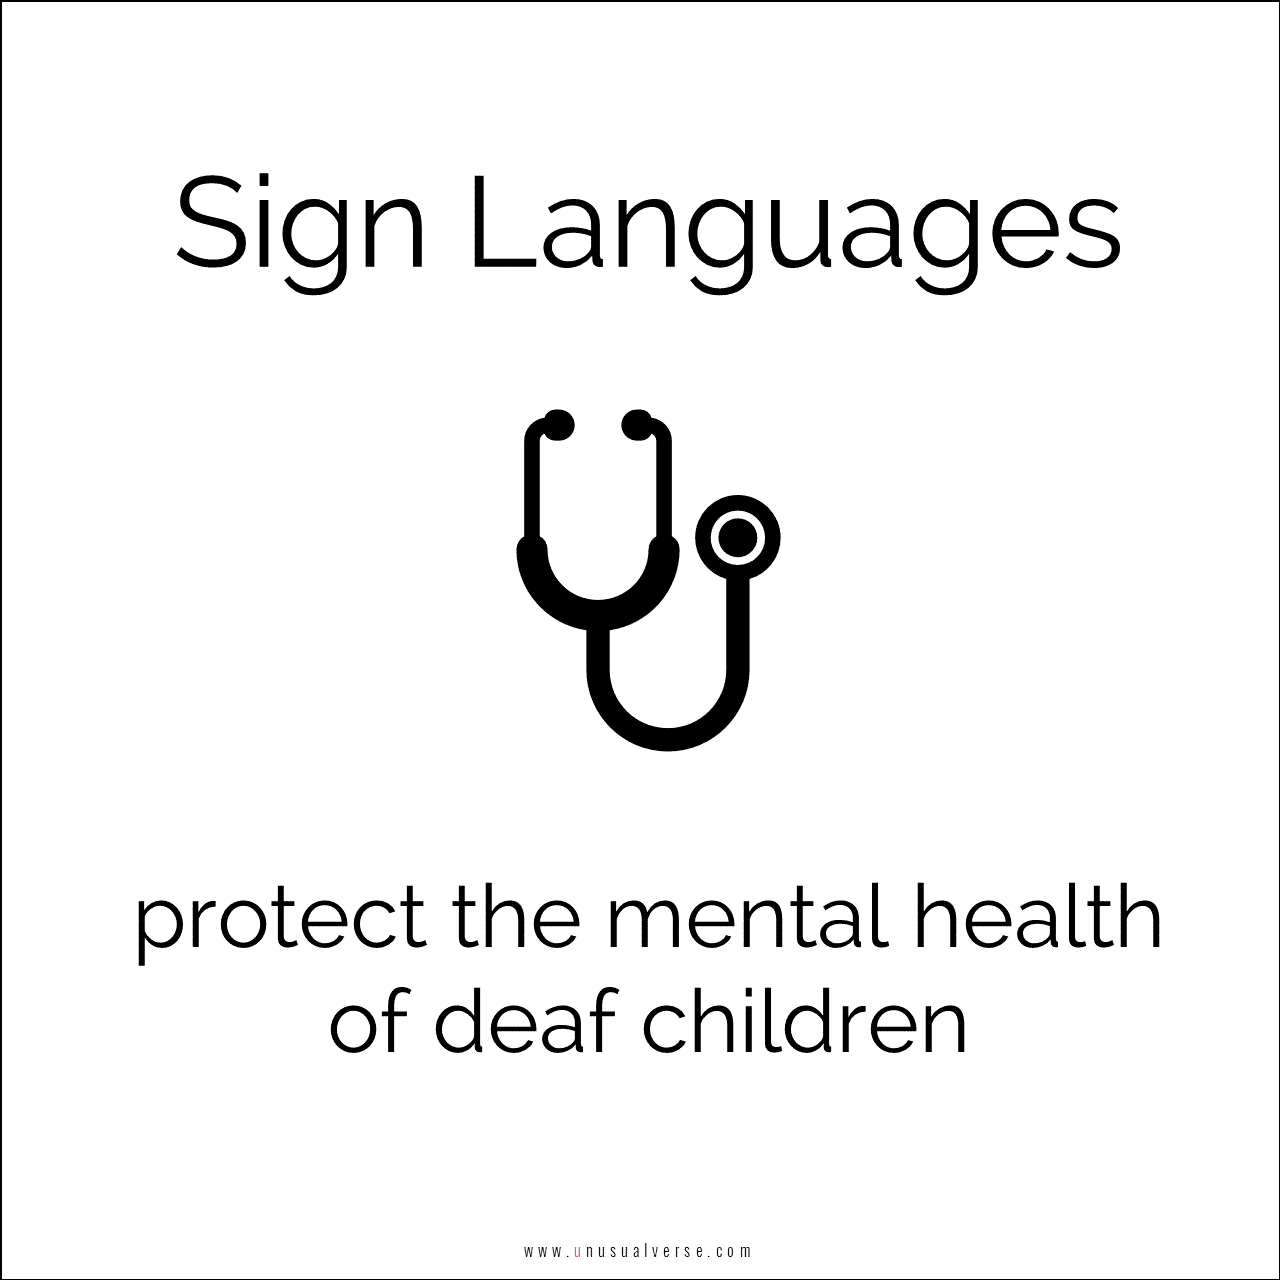 Sign Languages protect the mental health of deaf children